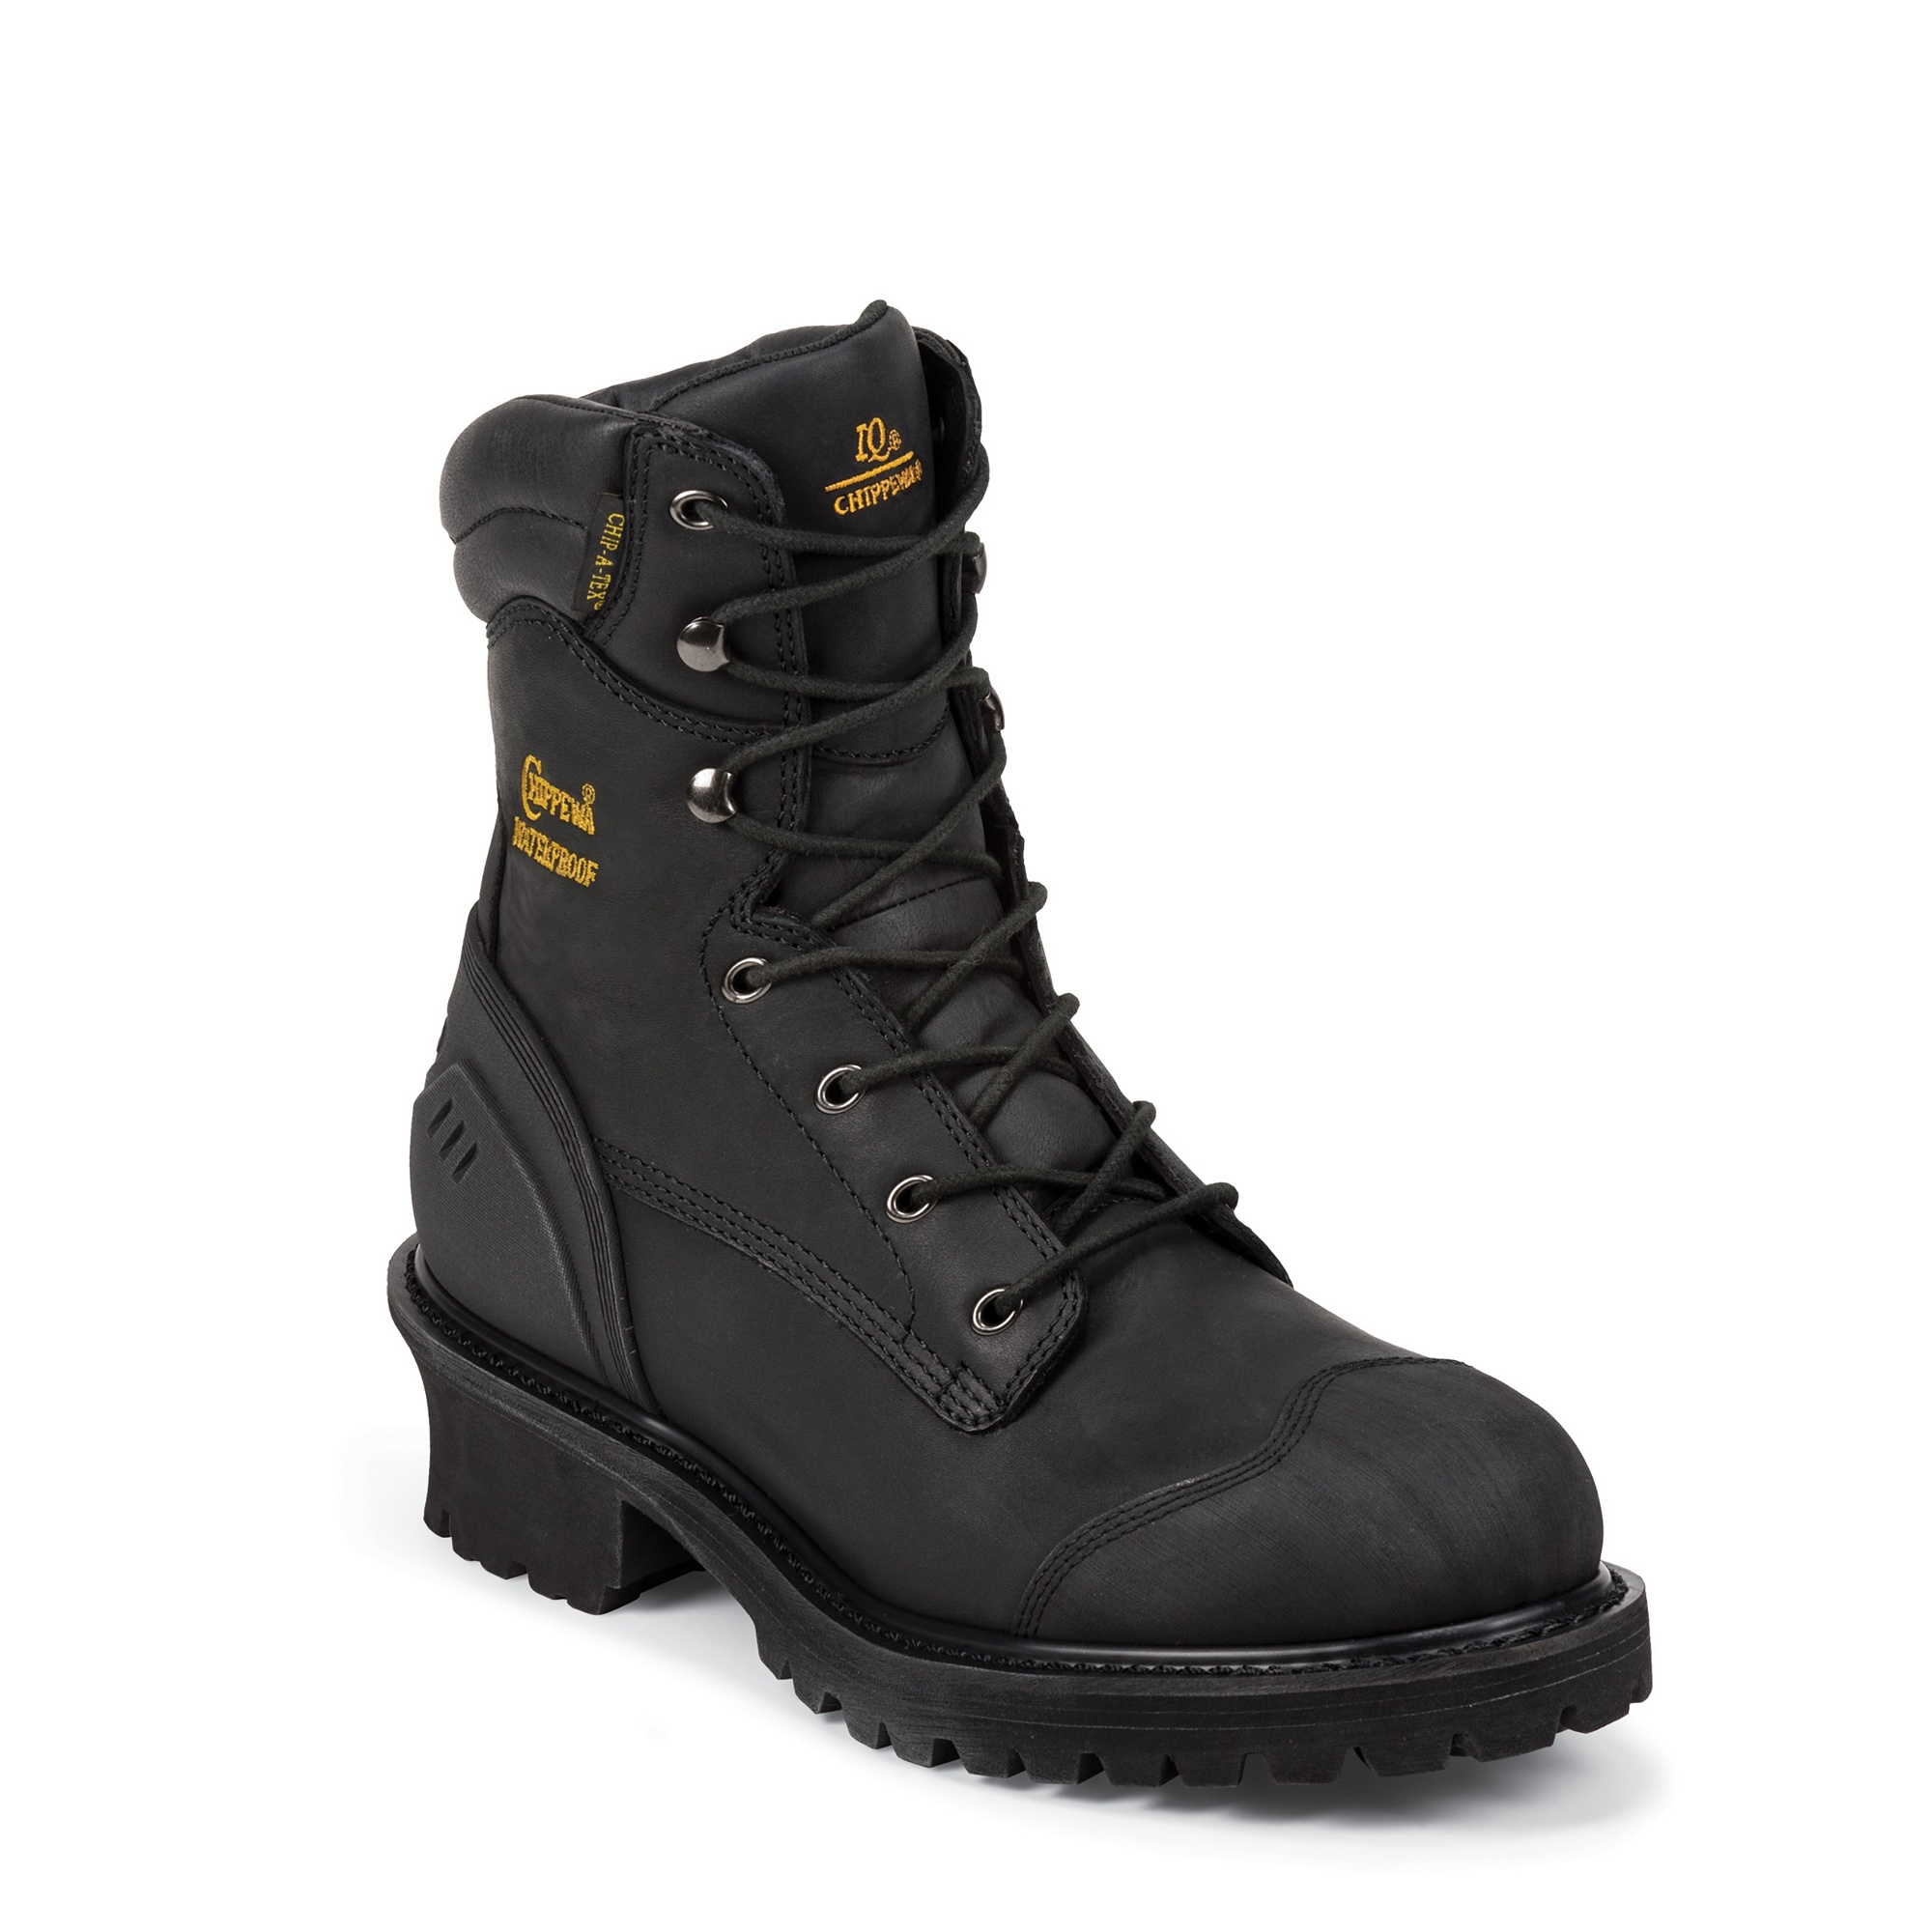 "Chippewa 8"" Black Oiled Waterproof Insulated"